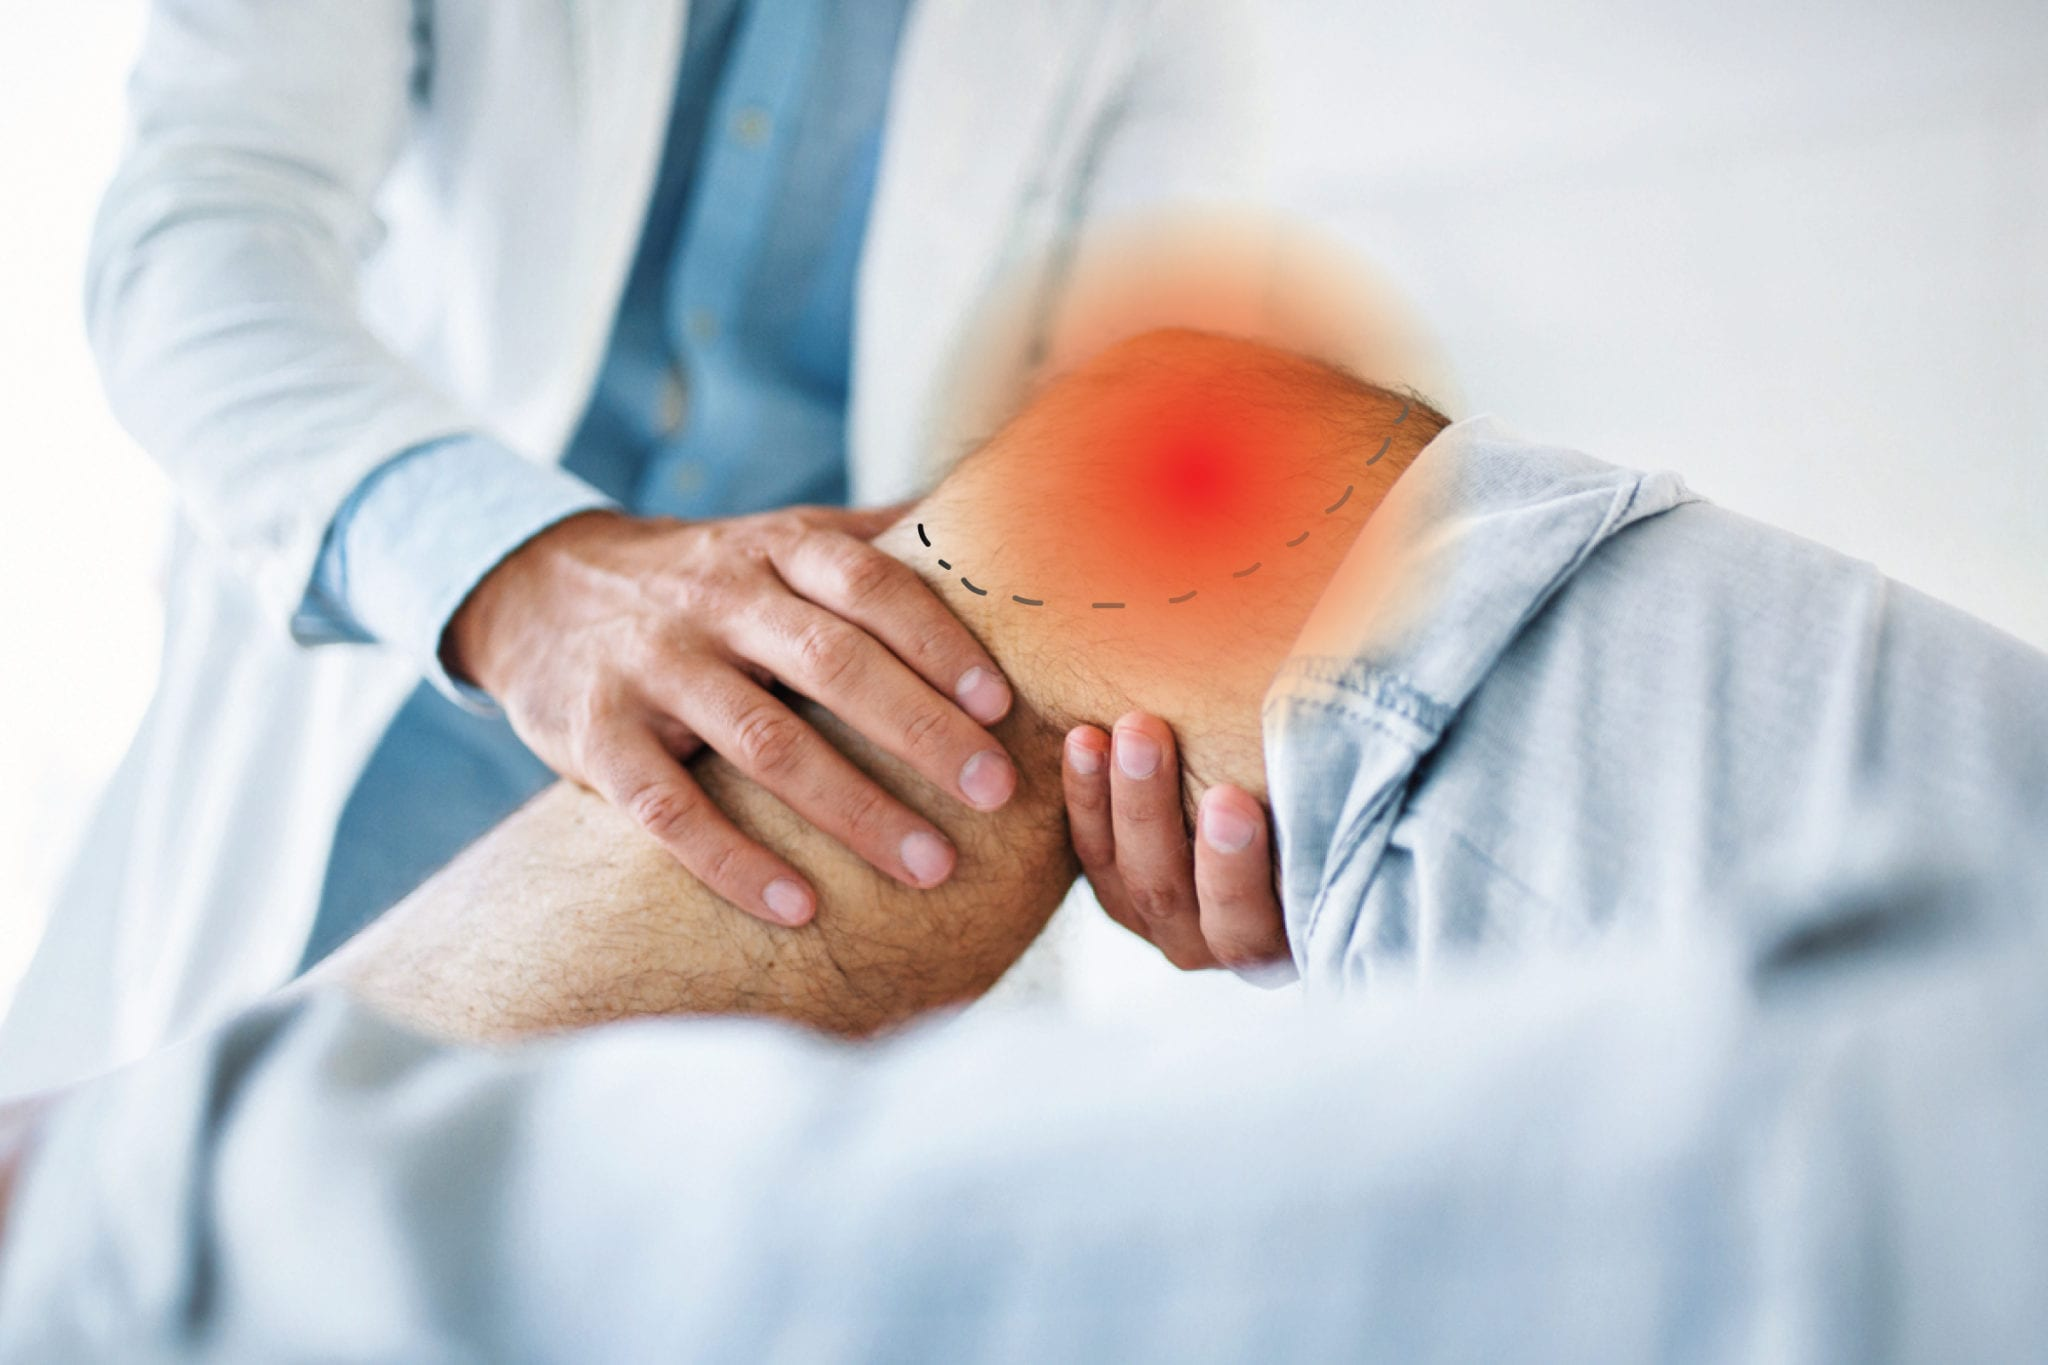 New Meniscus Knee Repair Surgery Could Slow Arthritis Onset